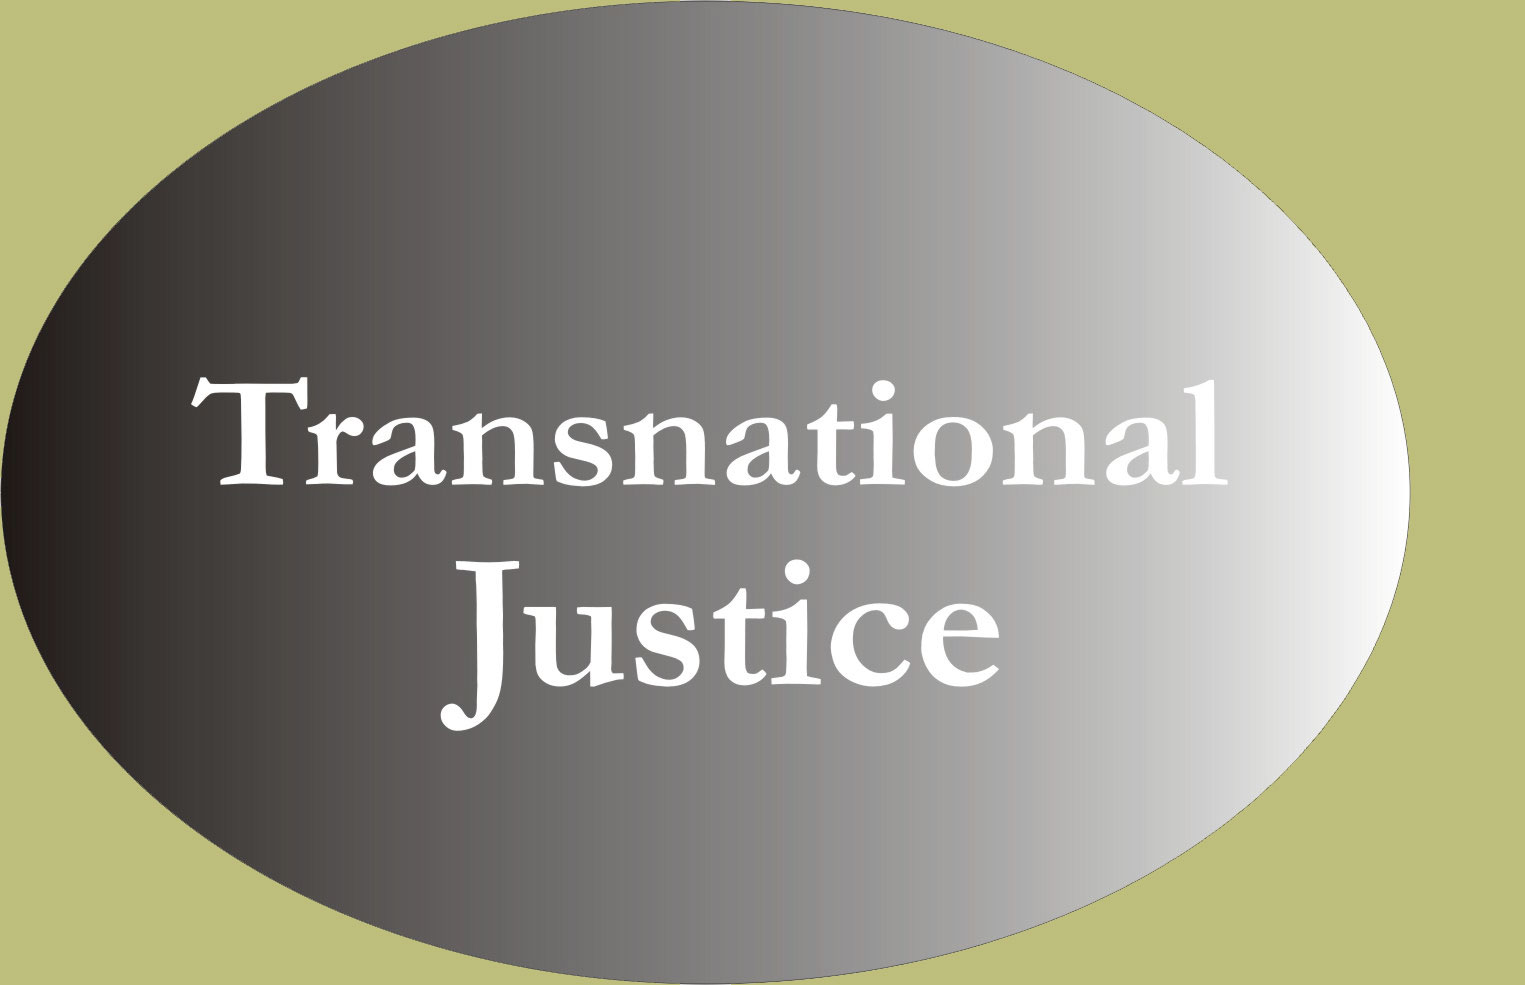 Transnational possibilities of Justice